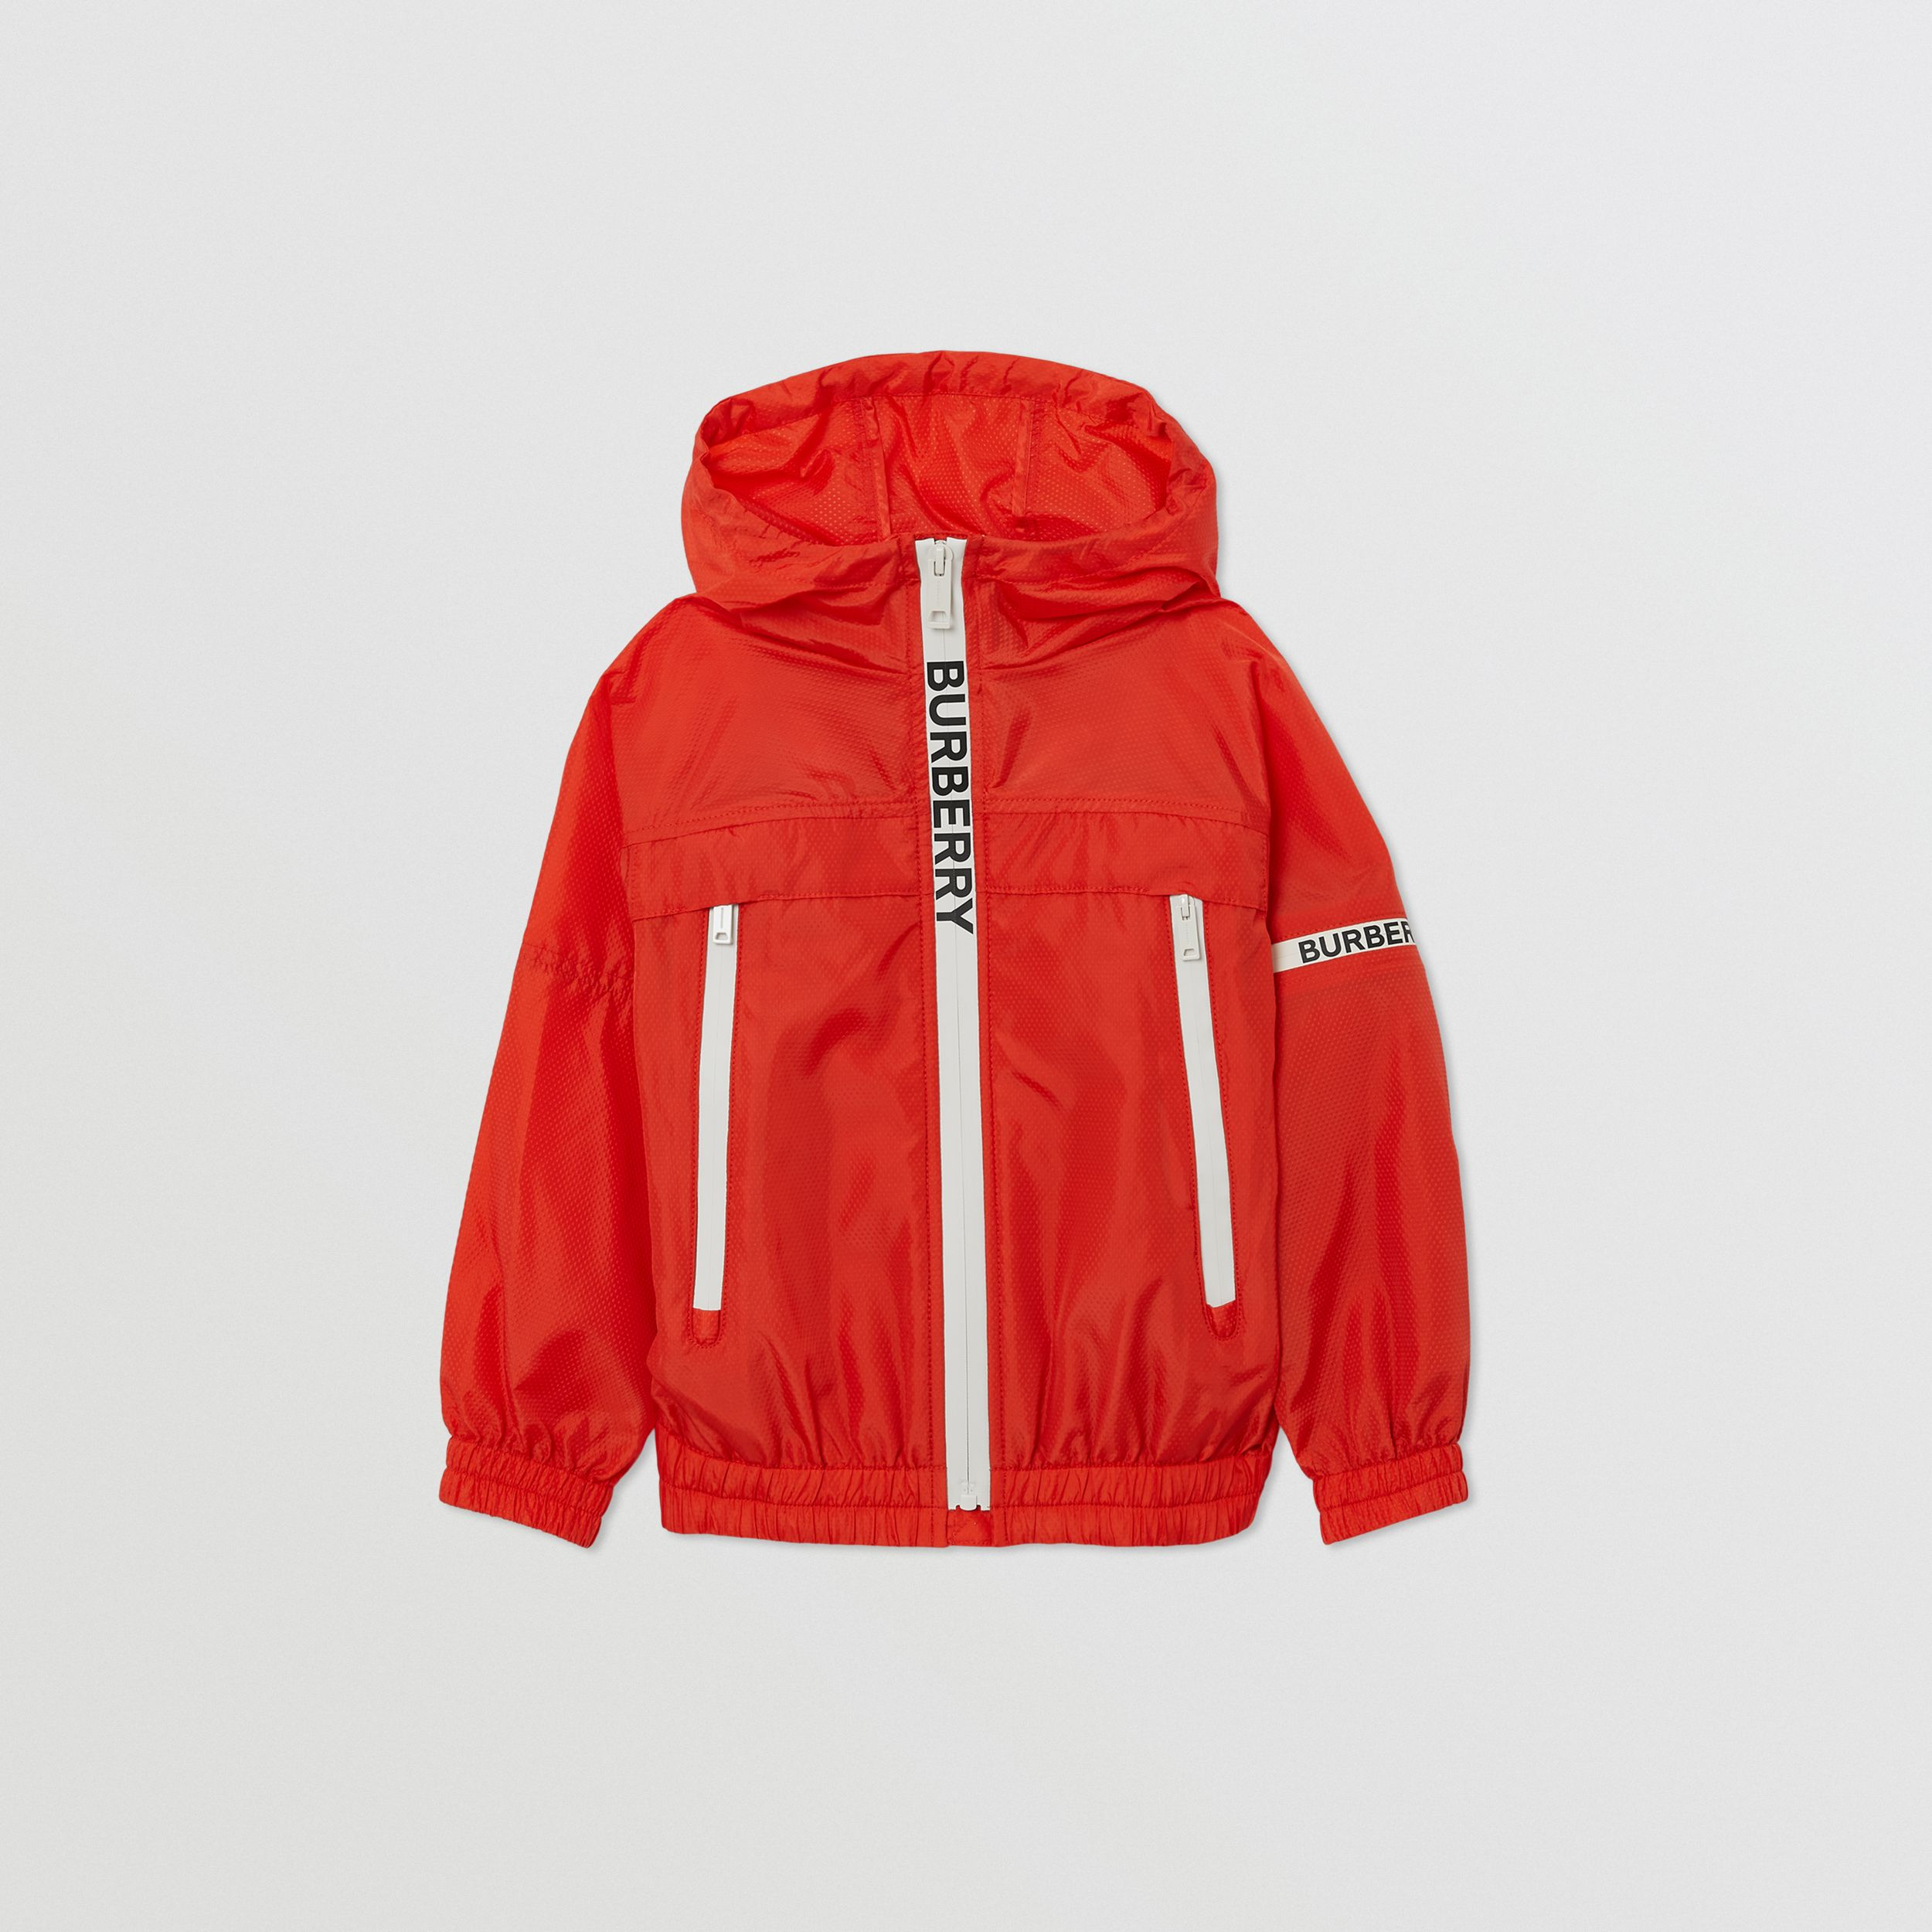 Logo Print Lightweight Hooded Jacket in Orange Red | Burberry - 1